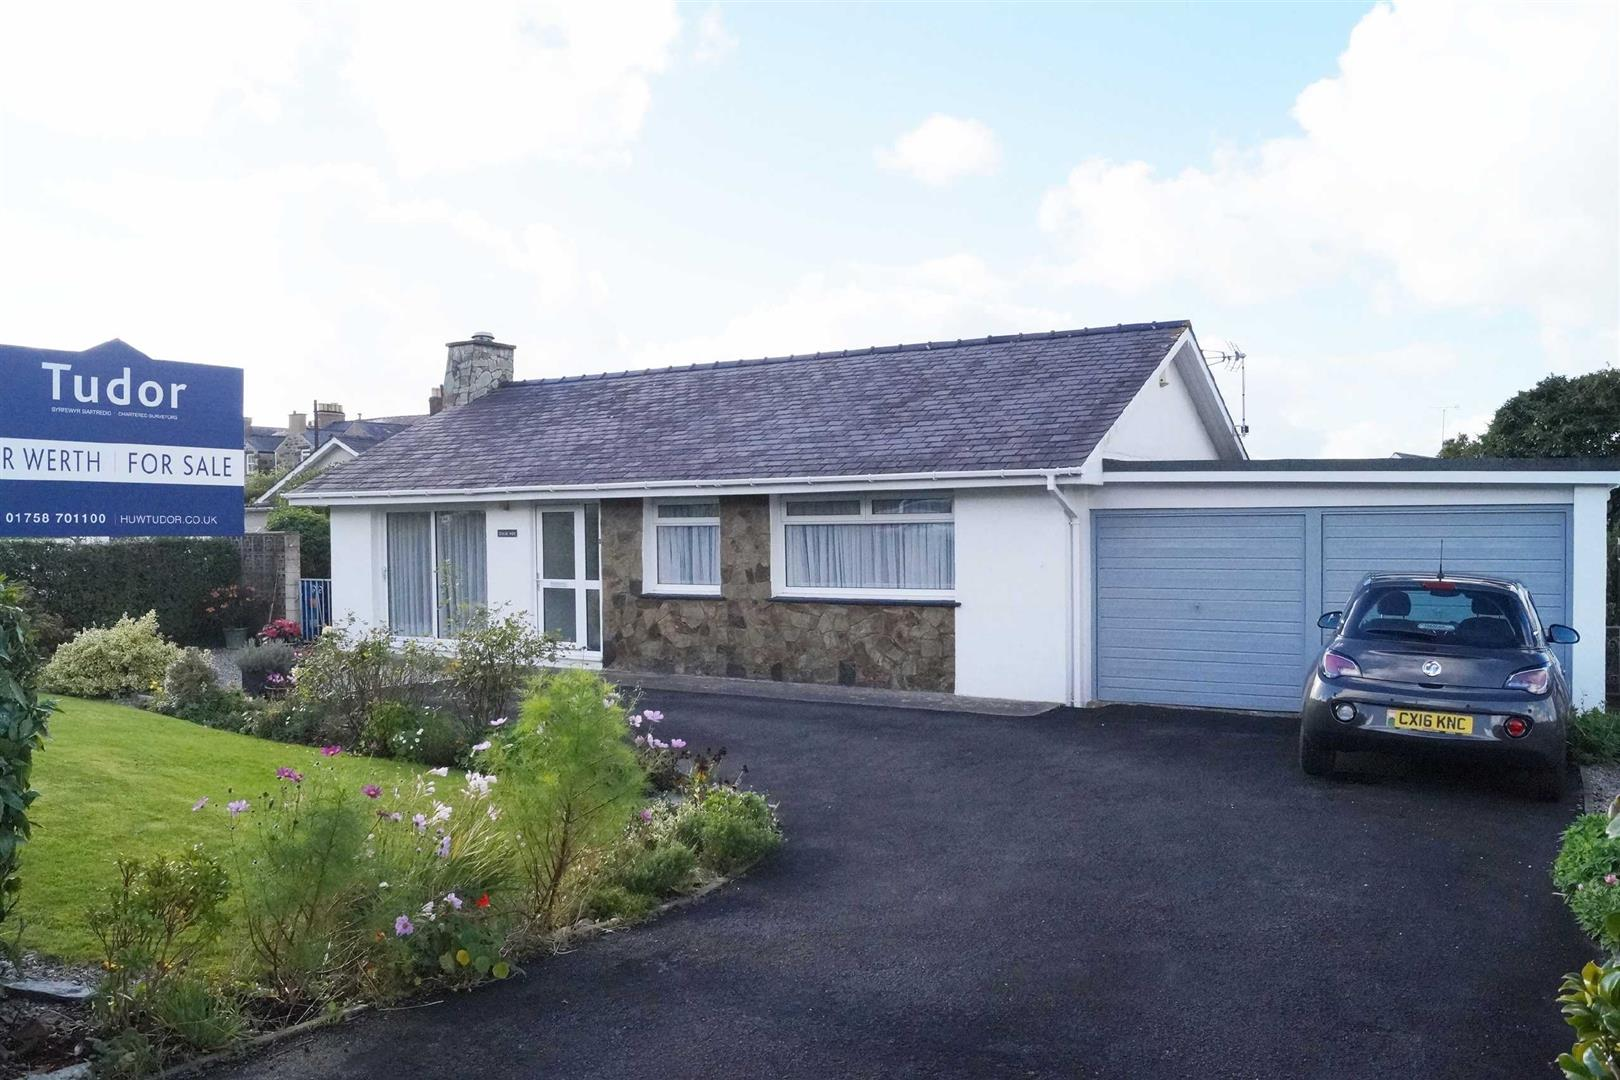 Penaber Estate, Criccieth - £262,500/Reduced to